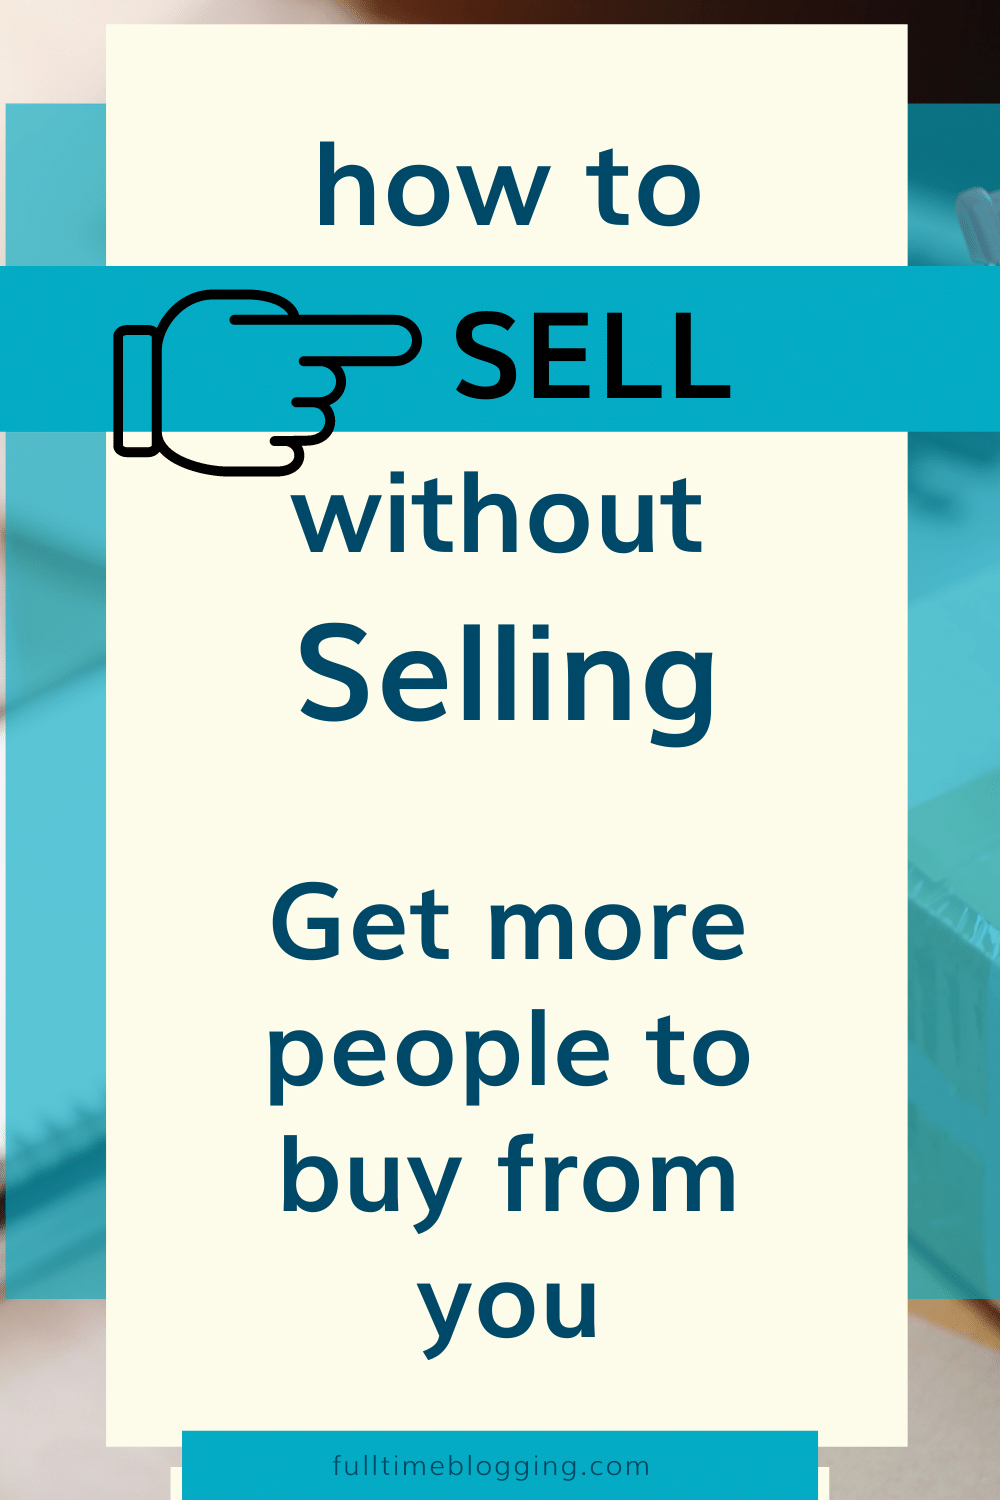 how to get people to buy from you